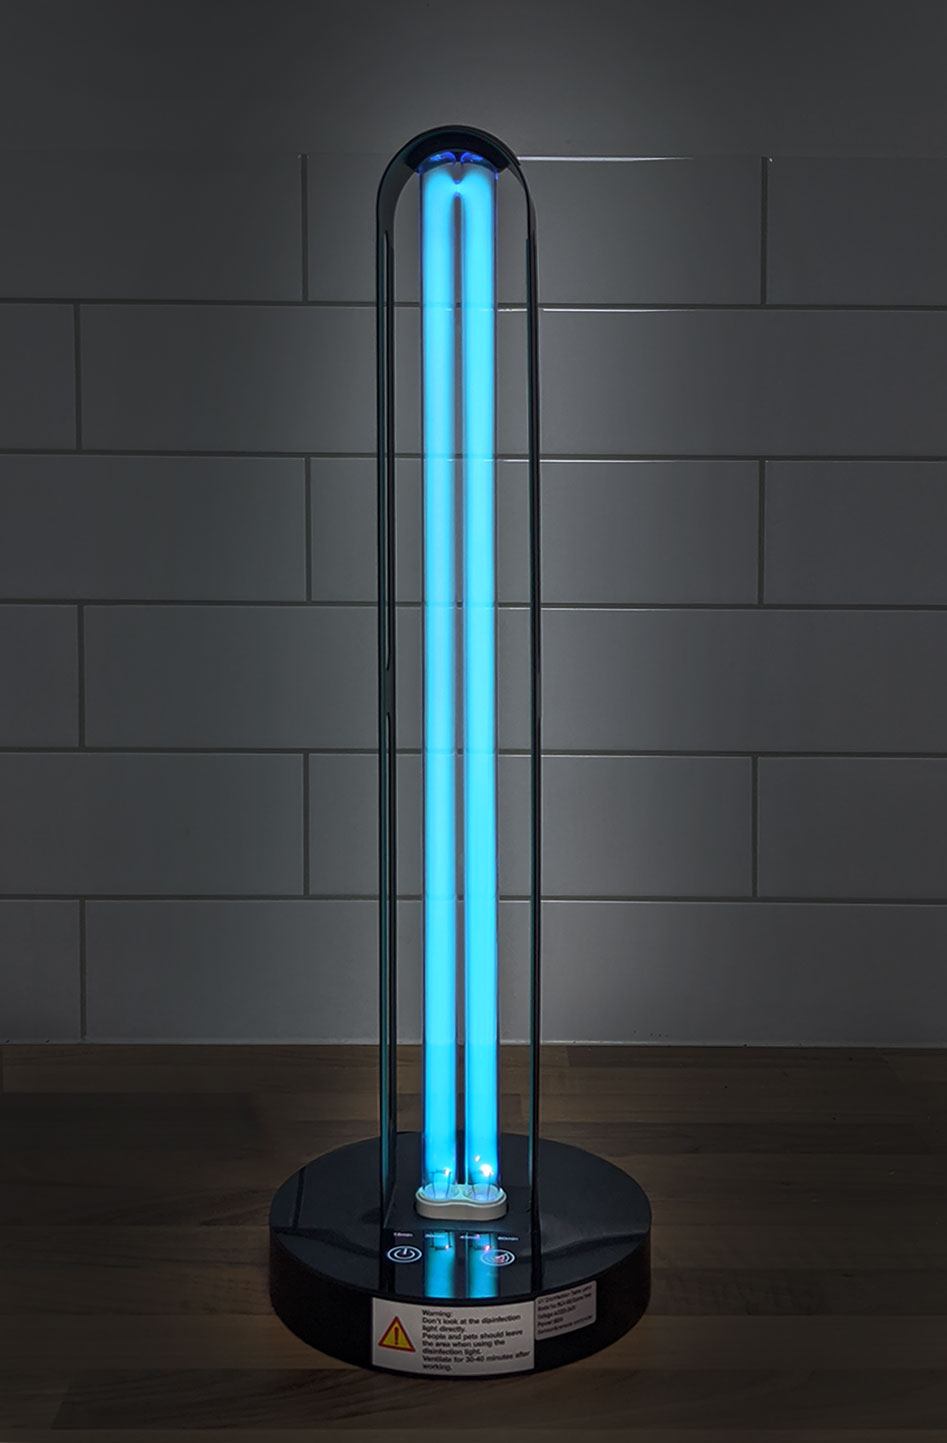 MUVI Disinfection Lamp